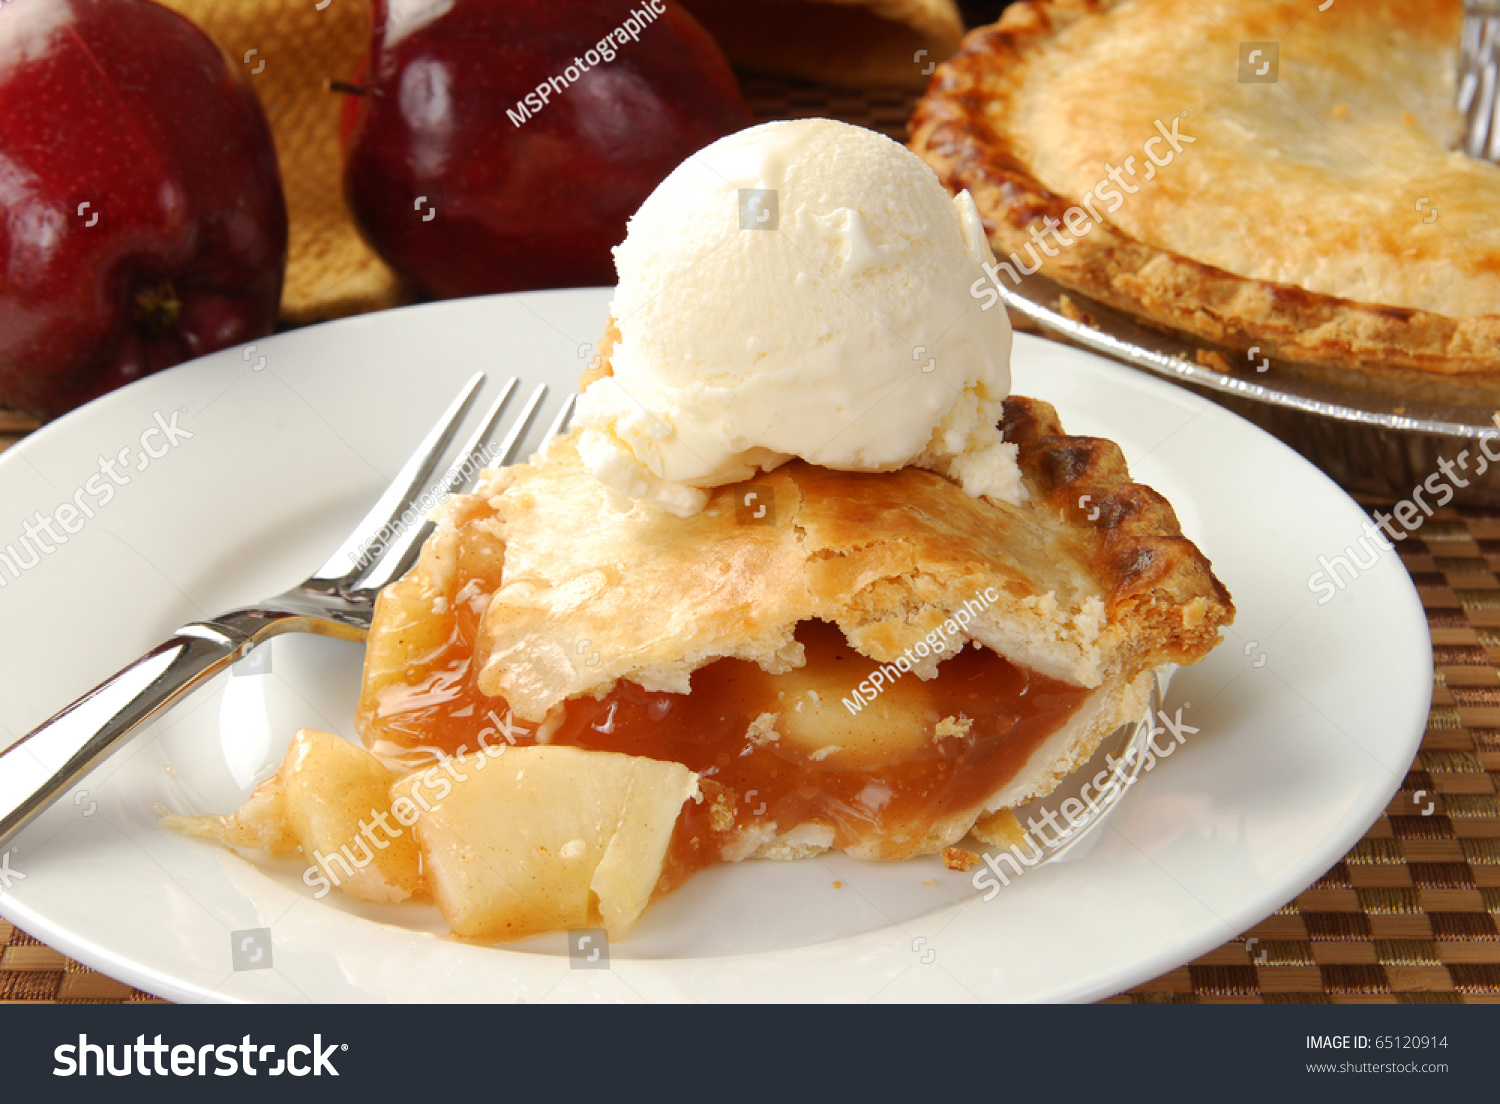 Image result for pie and ice cream